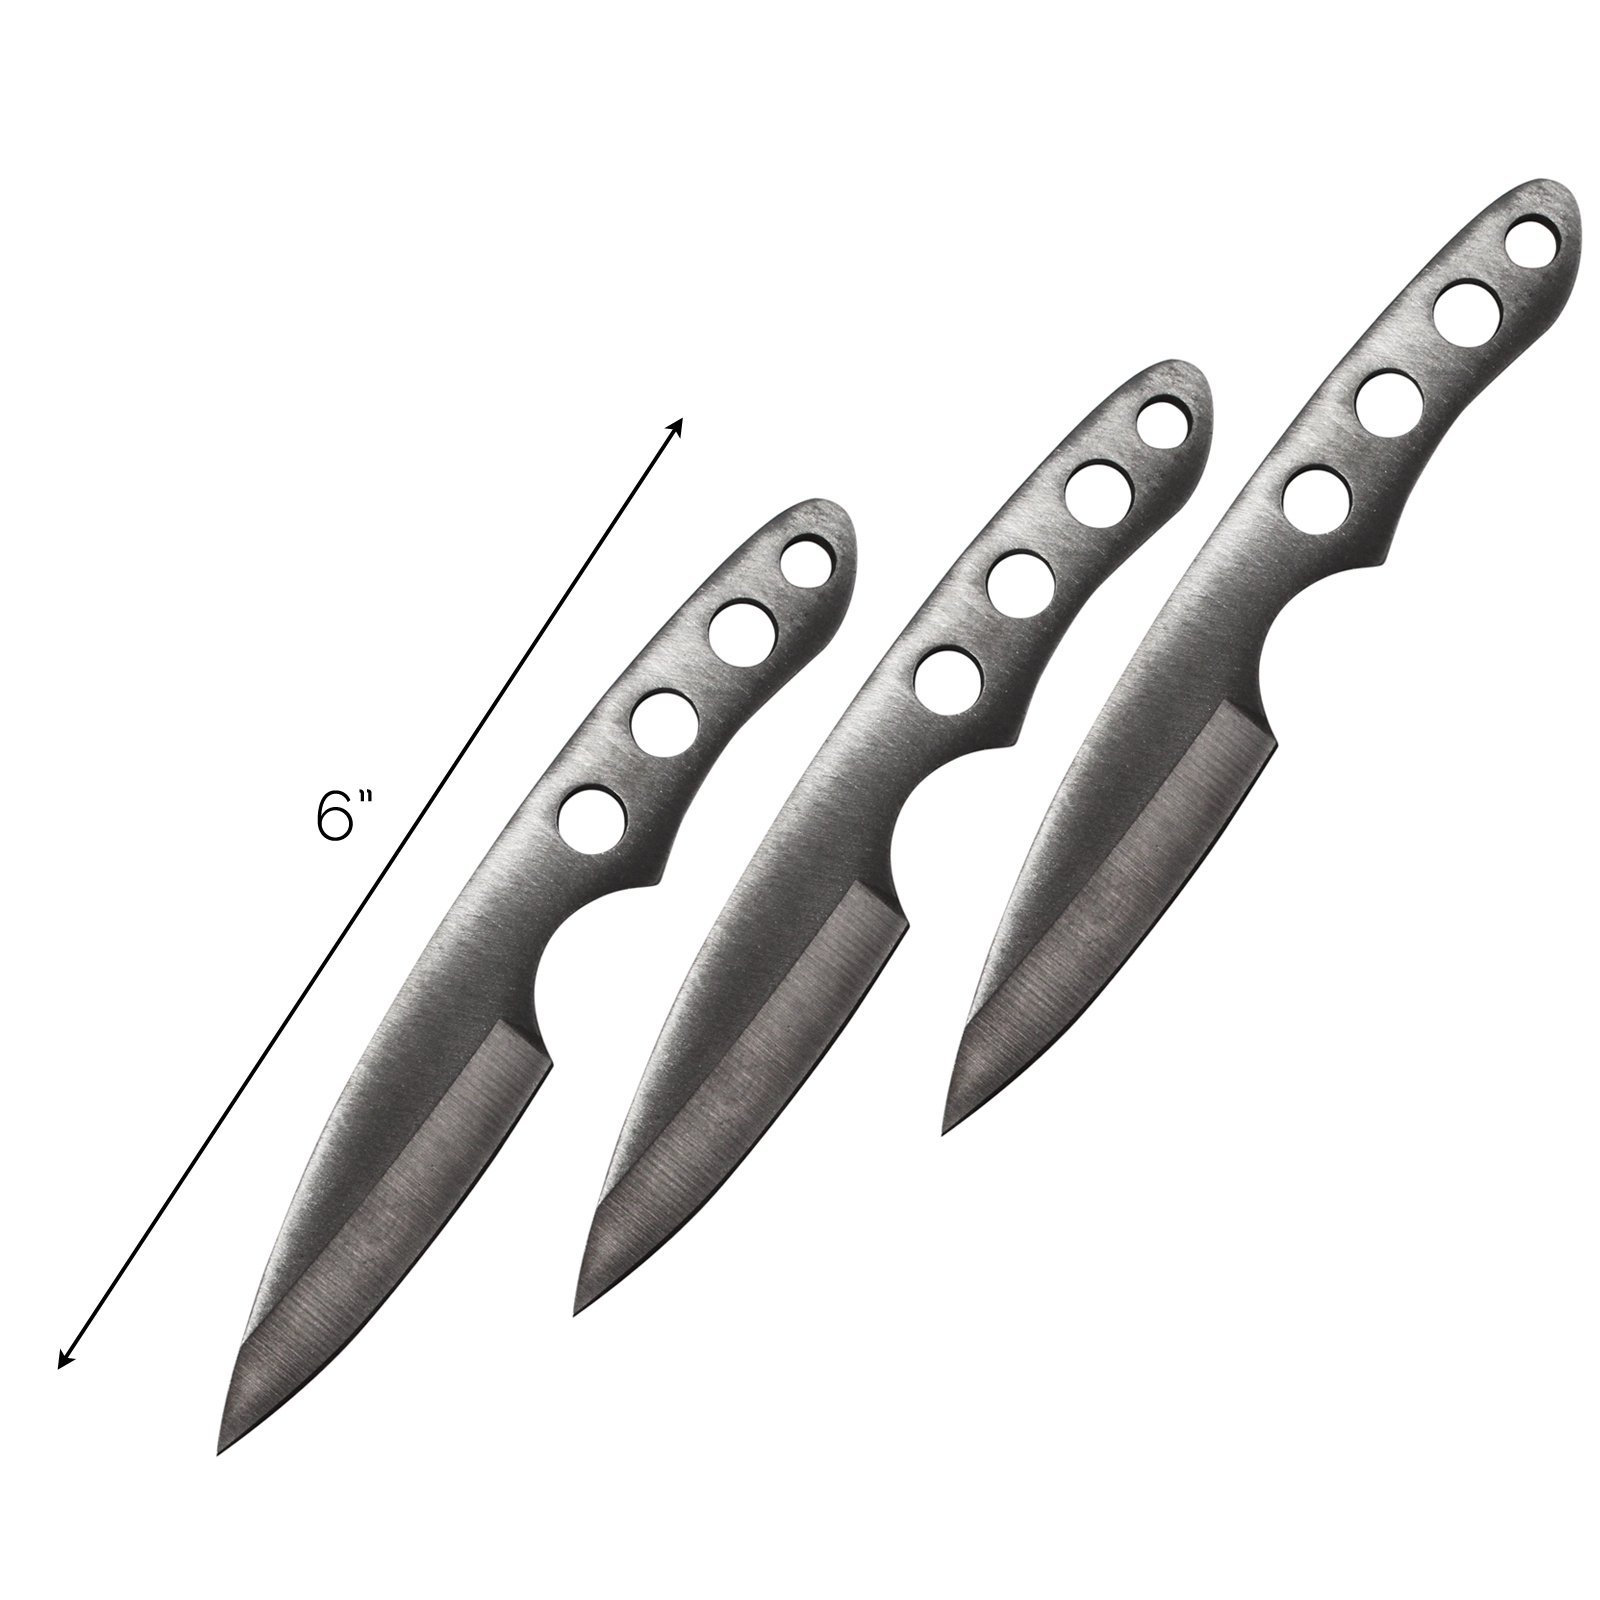 3 Piece Throwing Knife Set 440 Stainless Steel with Compact Carrying Case